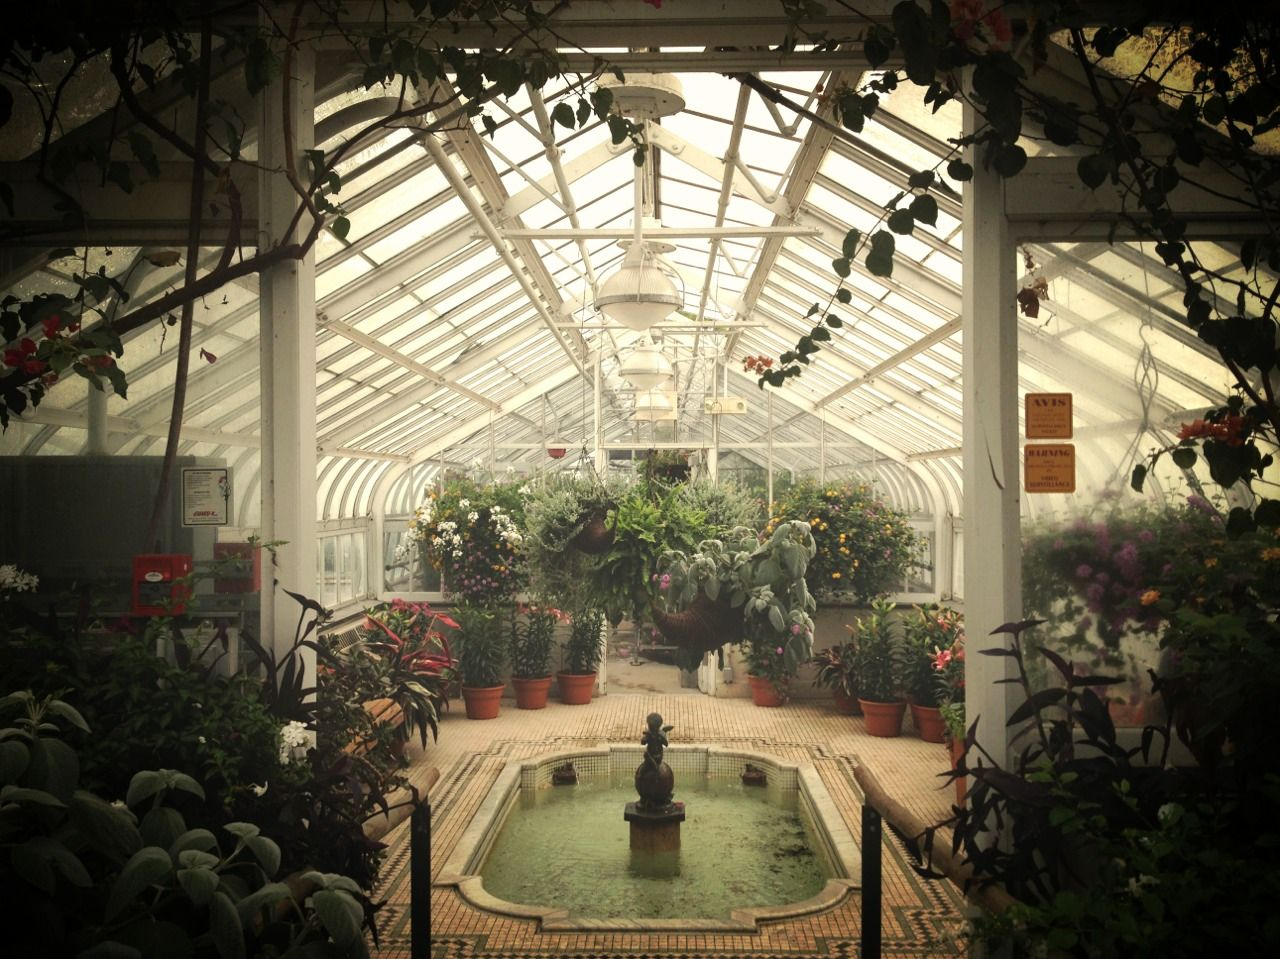 addams family greenhouse - Google Search